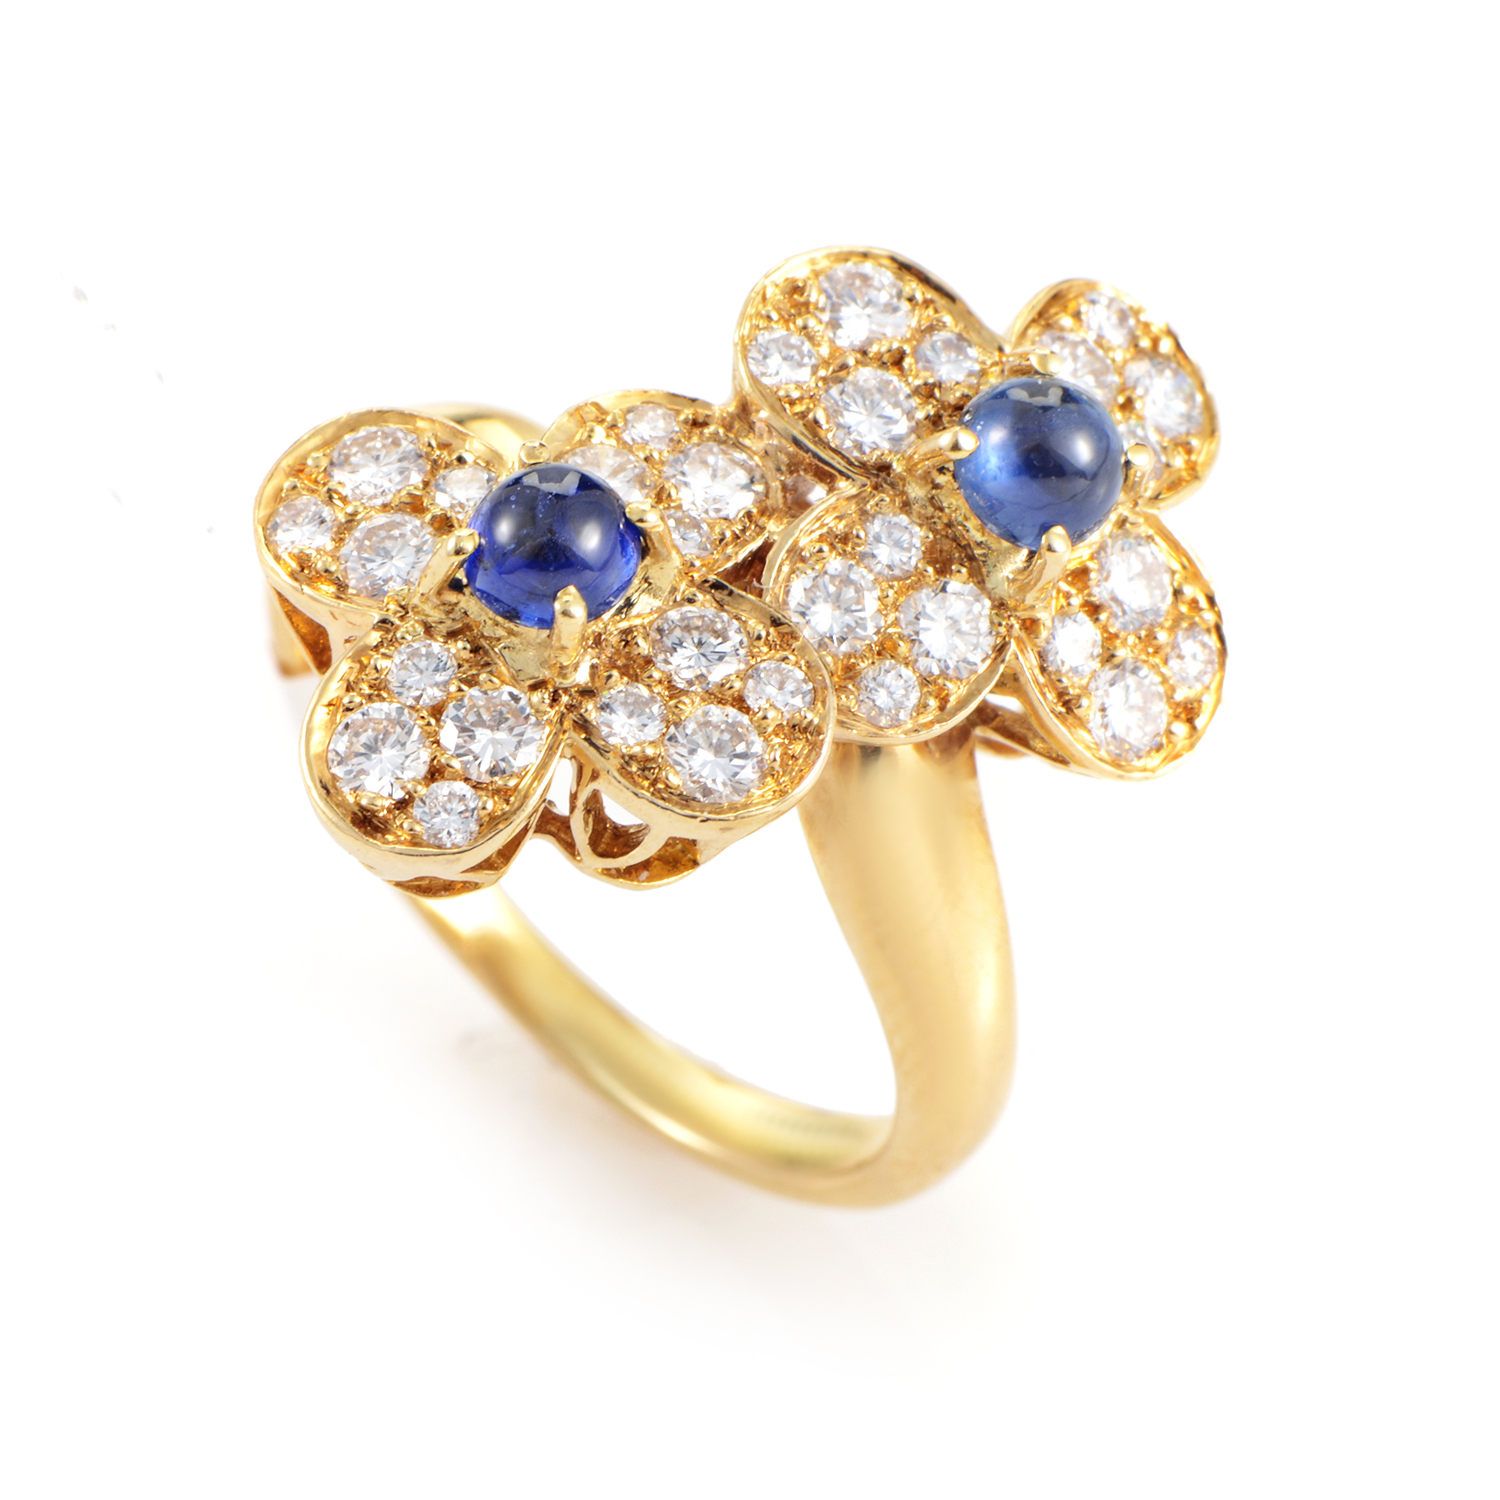 Van Cleef & Arpels Trefle Women's 18K Yellow Gold Diamond & Sapphire Ring